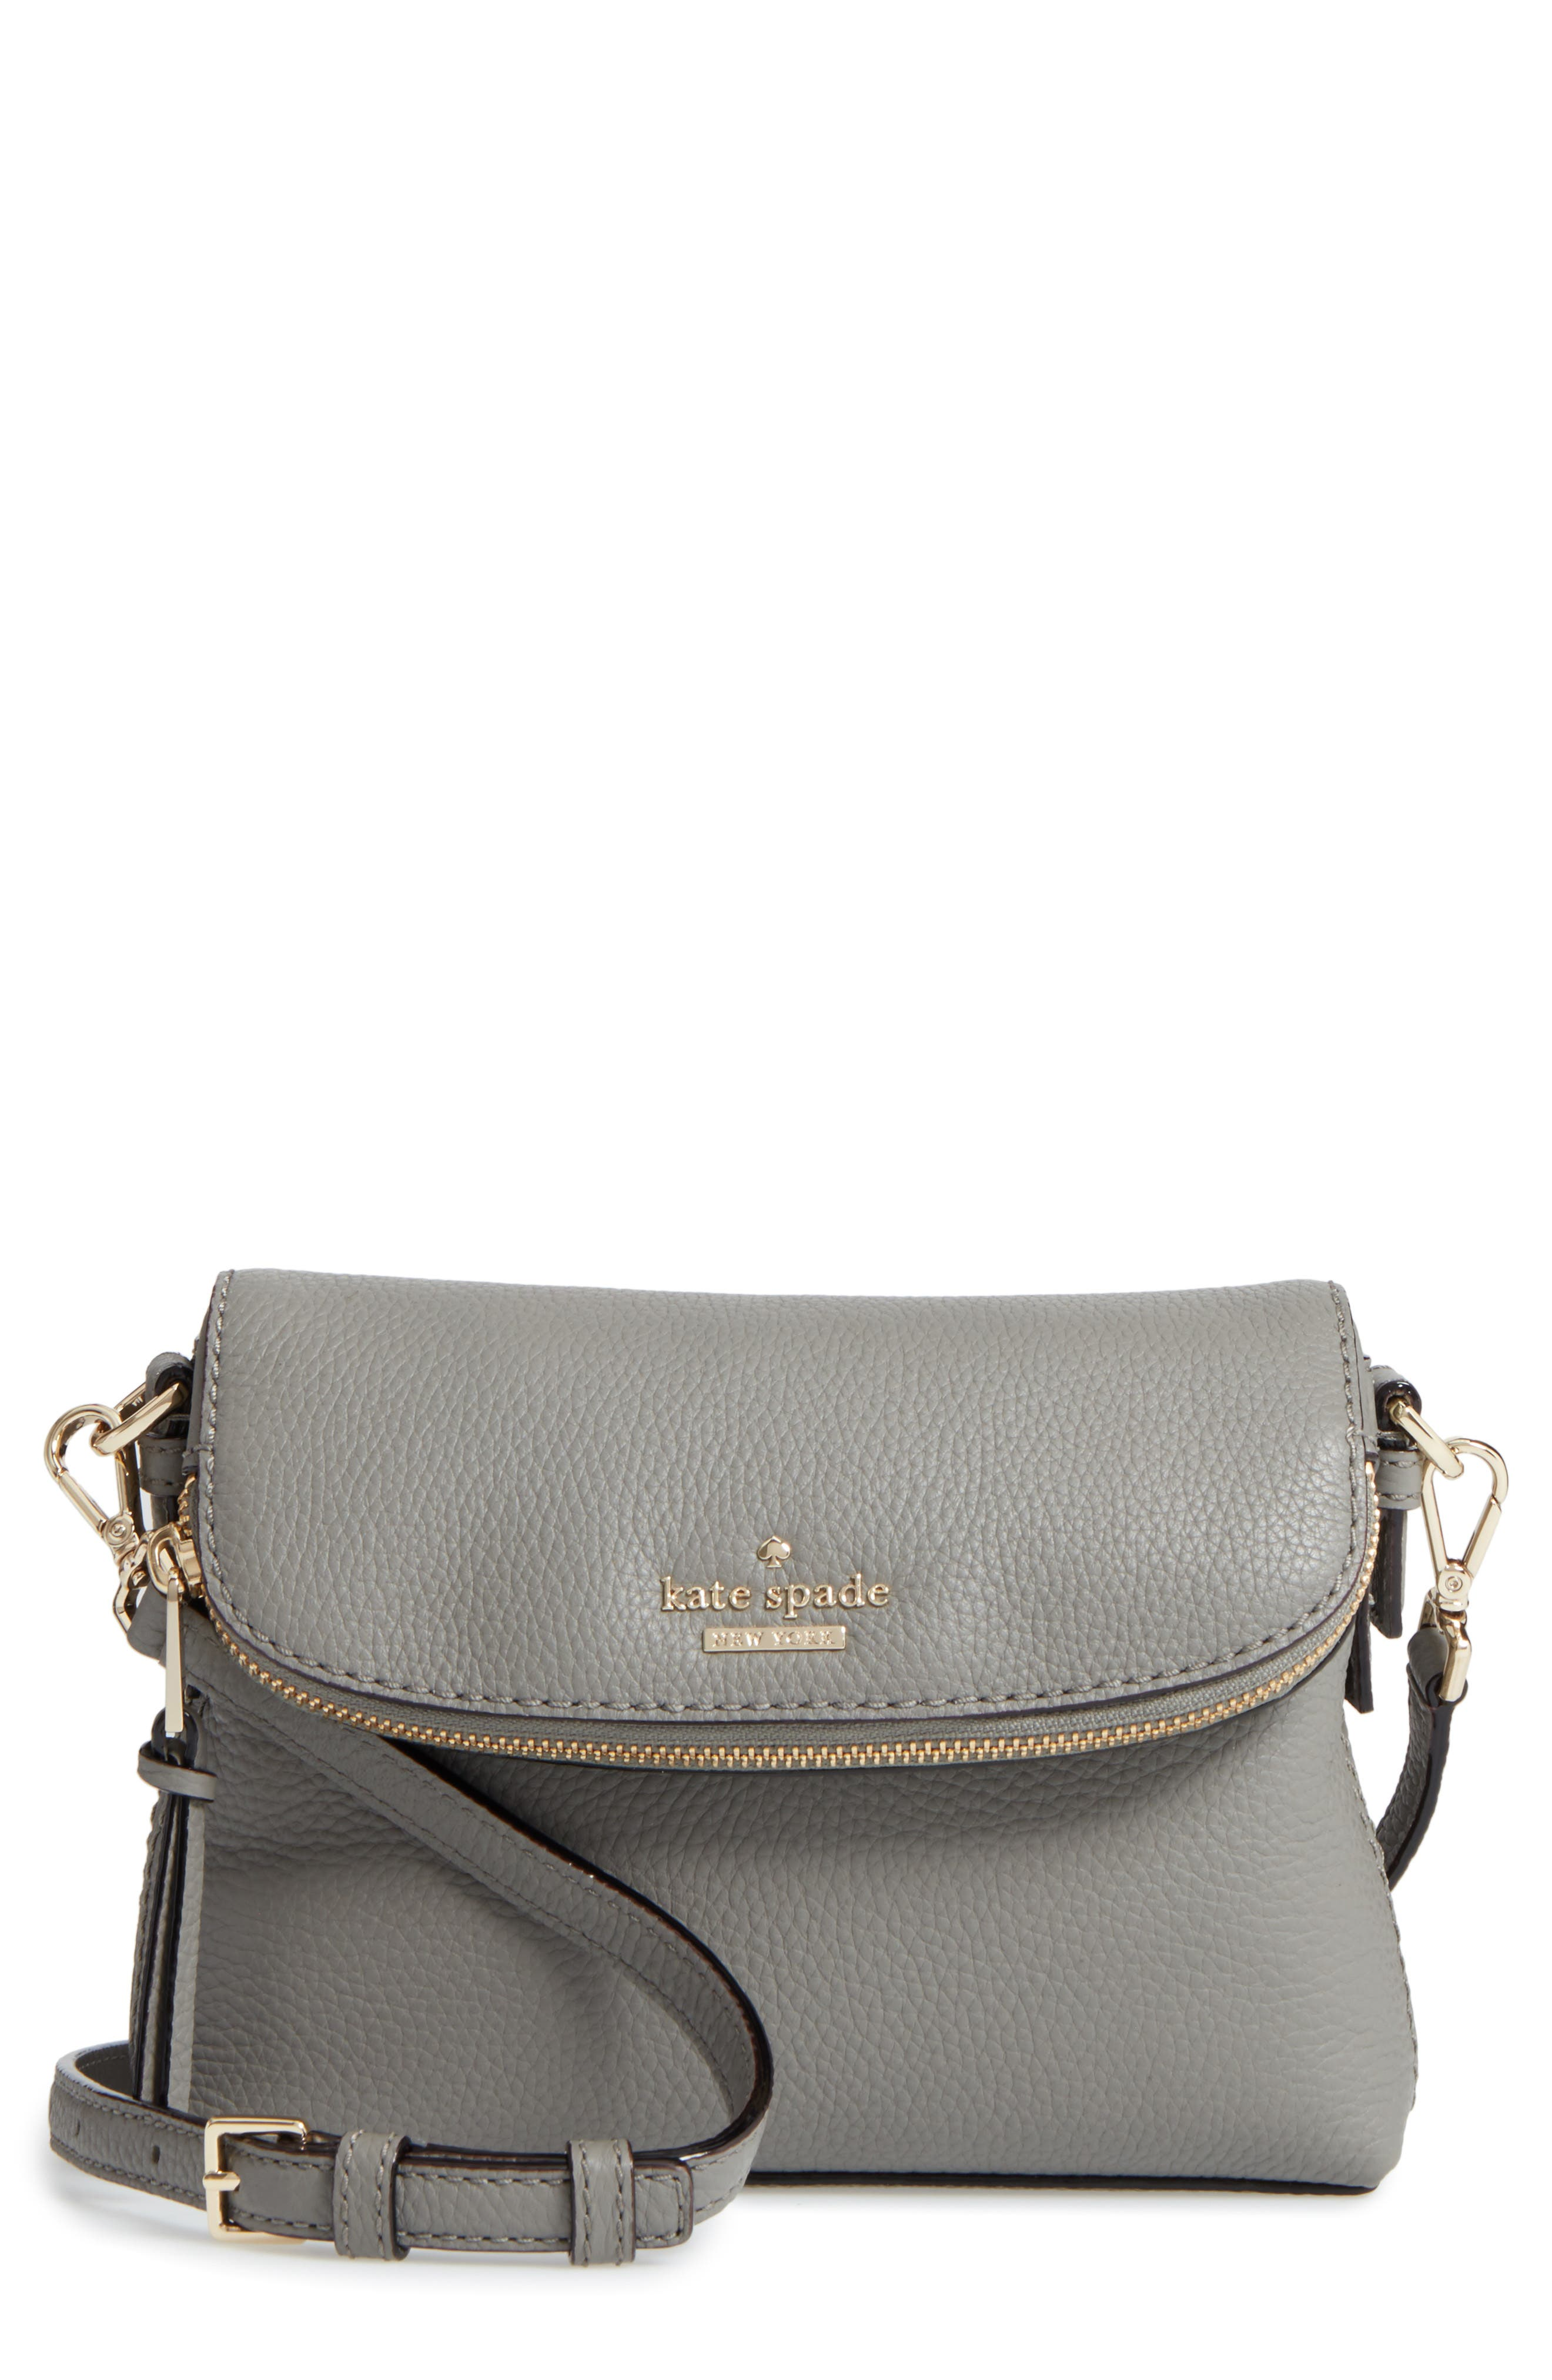 Main Image - kate spade new york jackson street harlyn leather crossbody bag